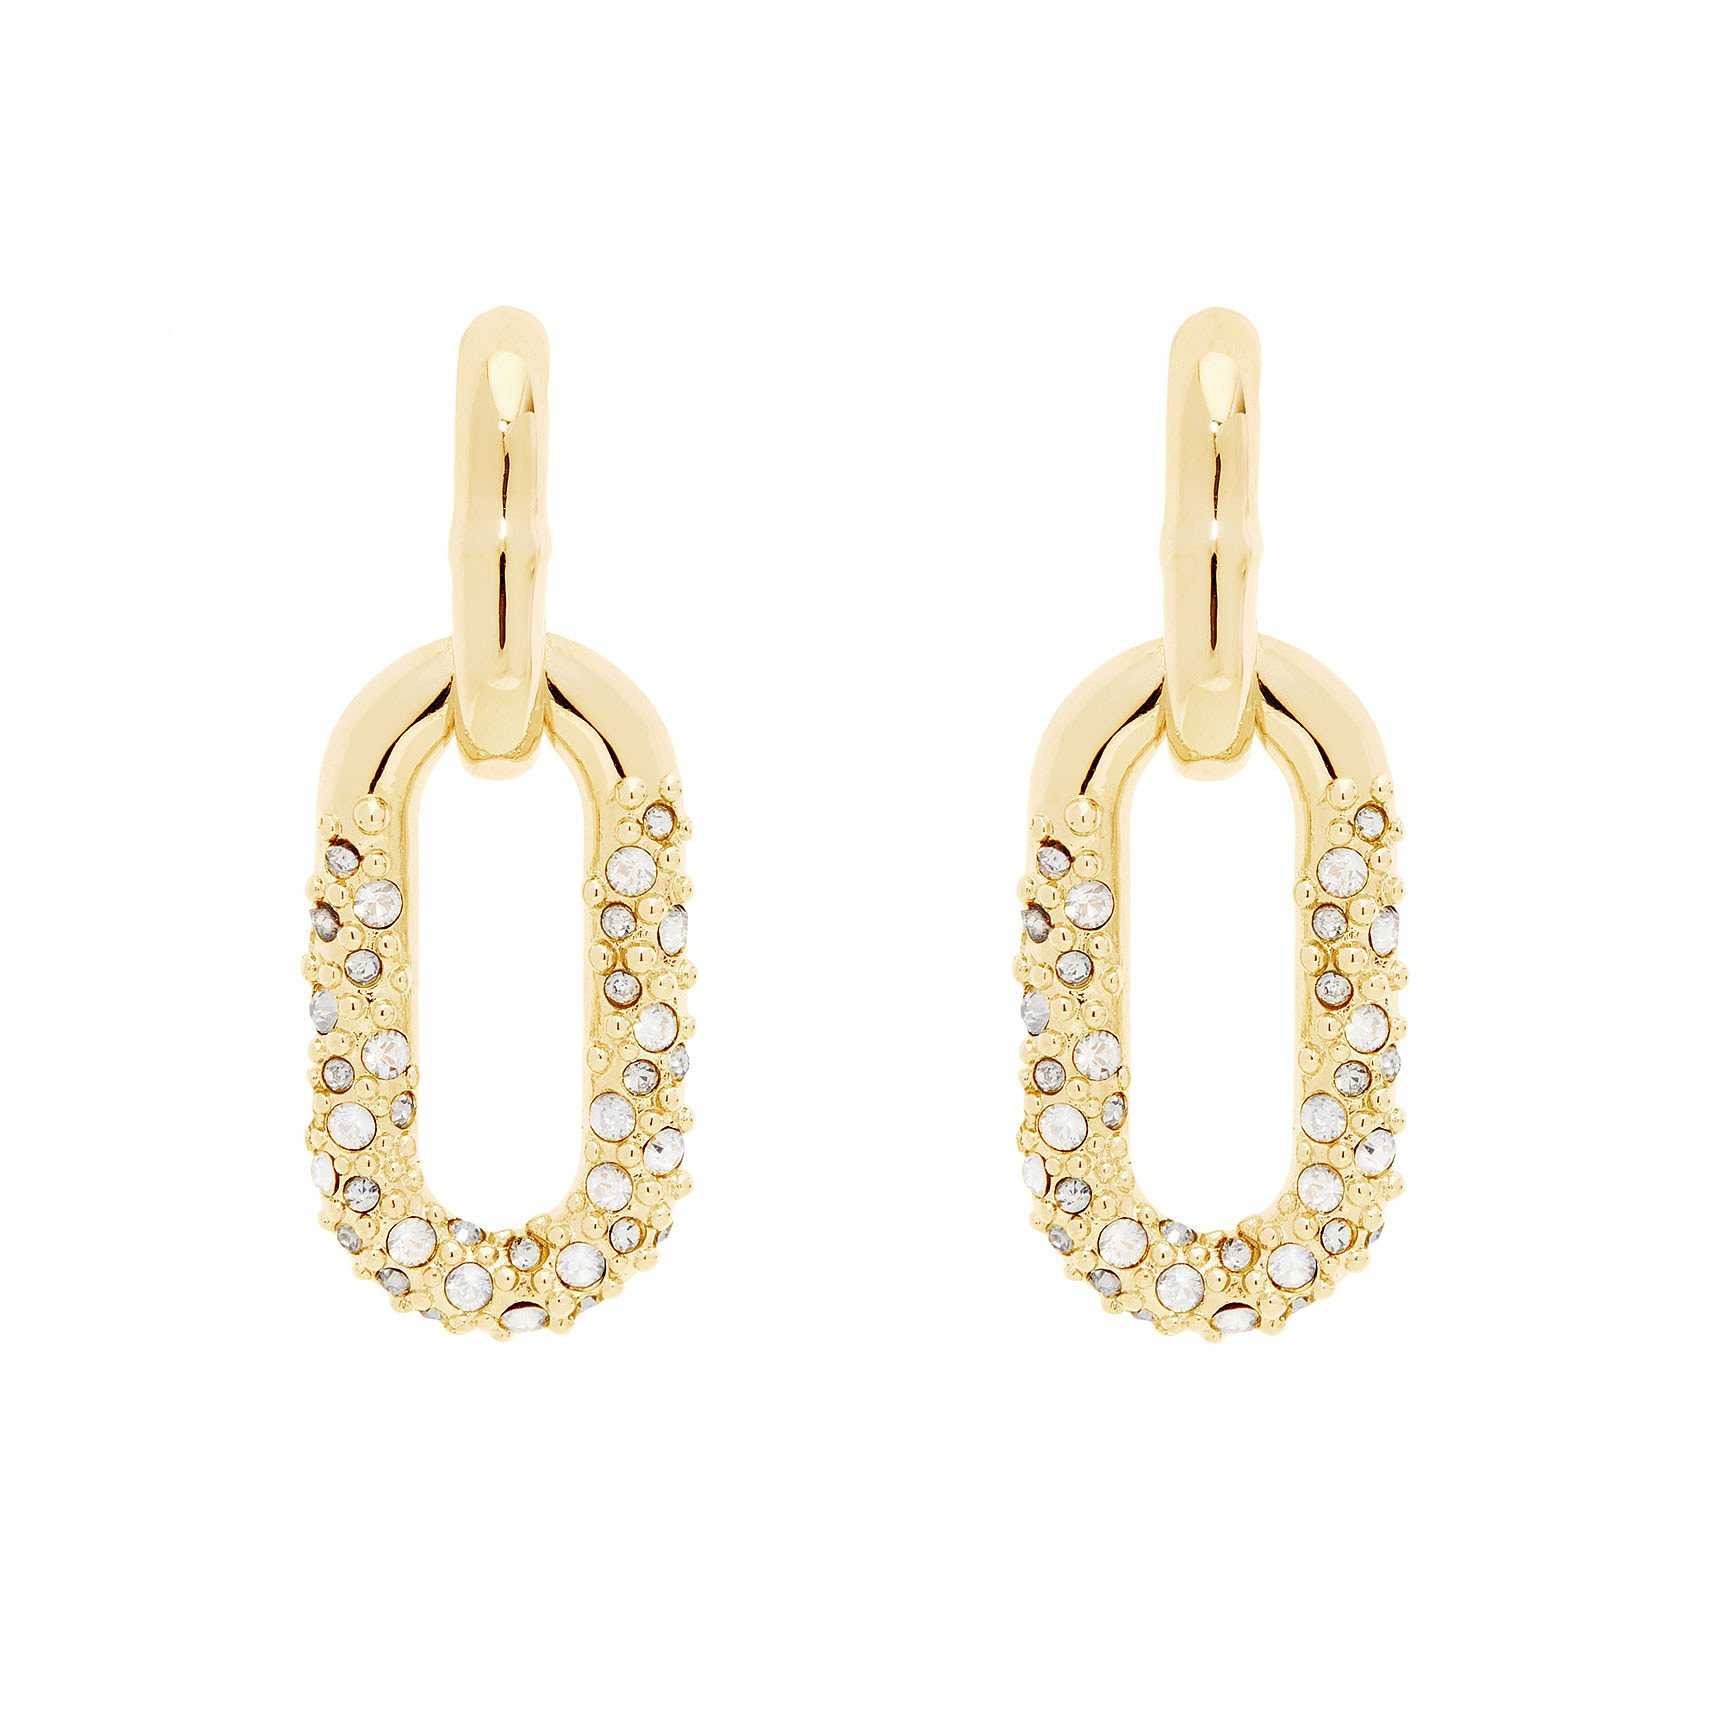 All We Are Orion Star Pave Chain Earrings